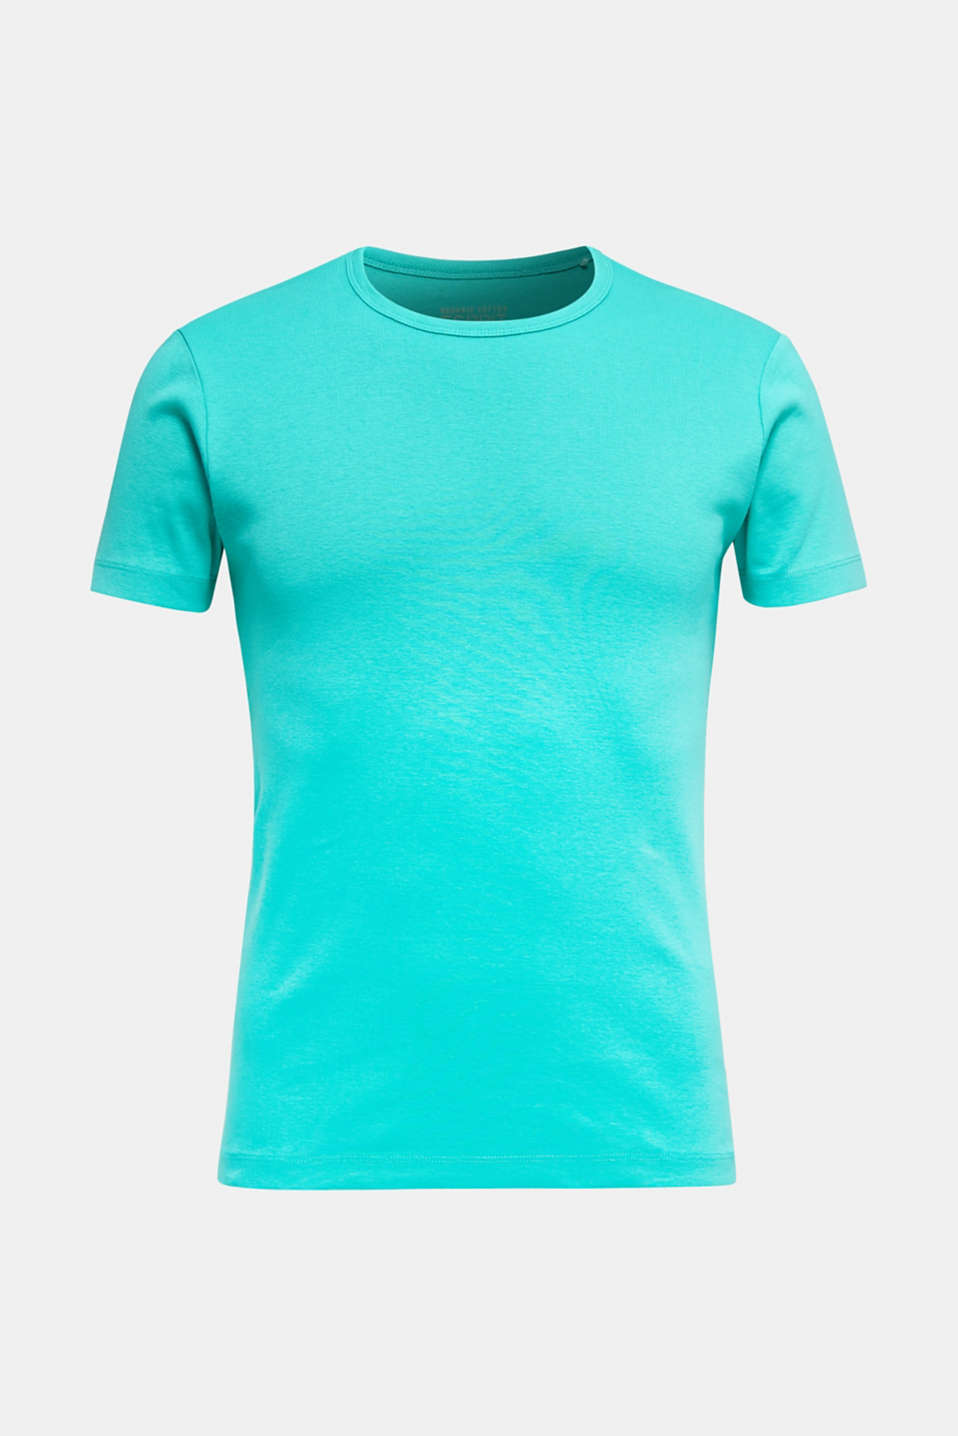 Ribbed jersey top made of 100% cotton, LIGHT TURQUOISE, detail image number 7